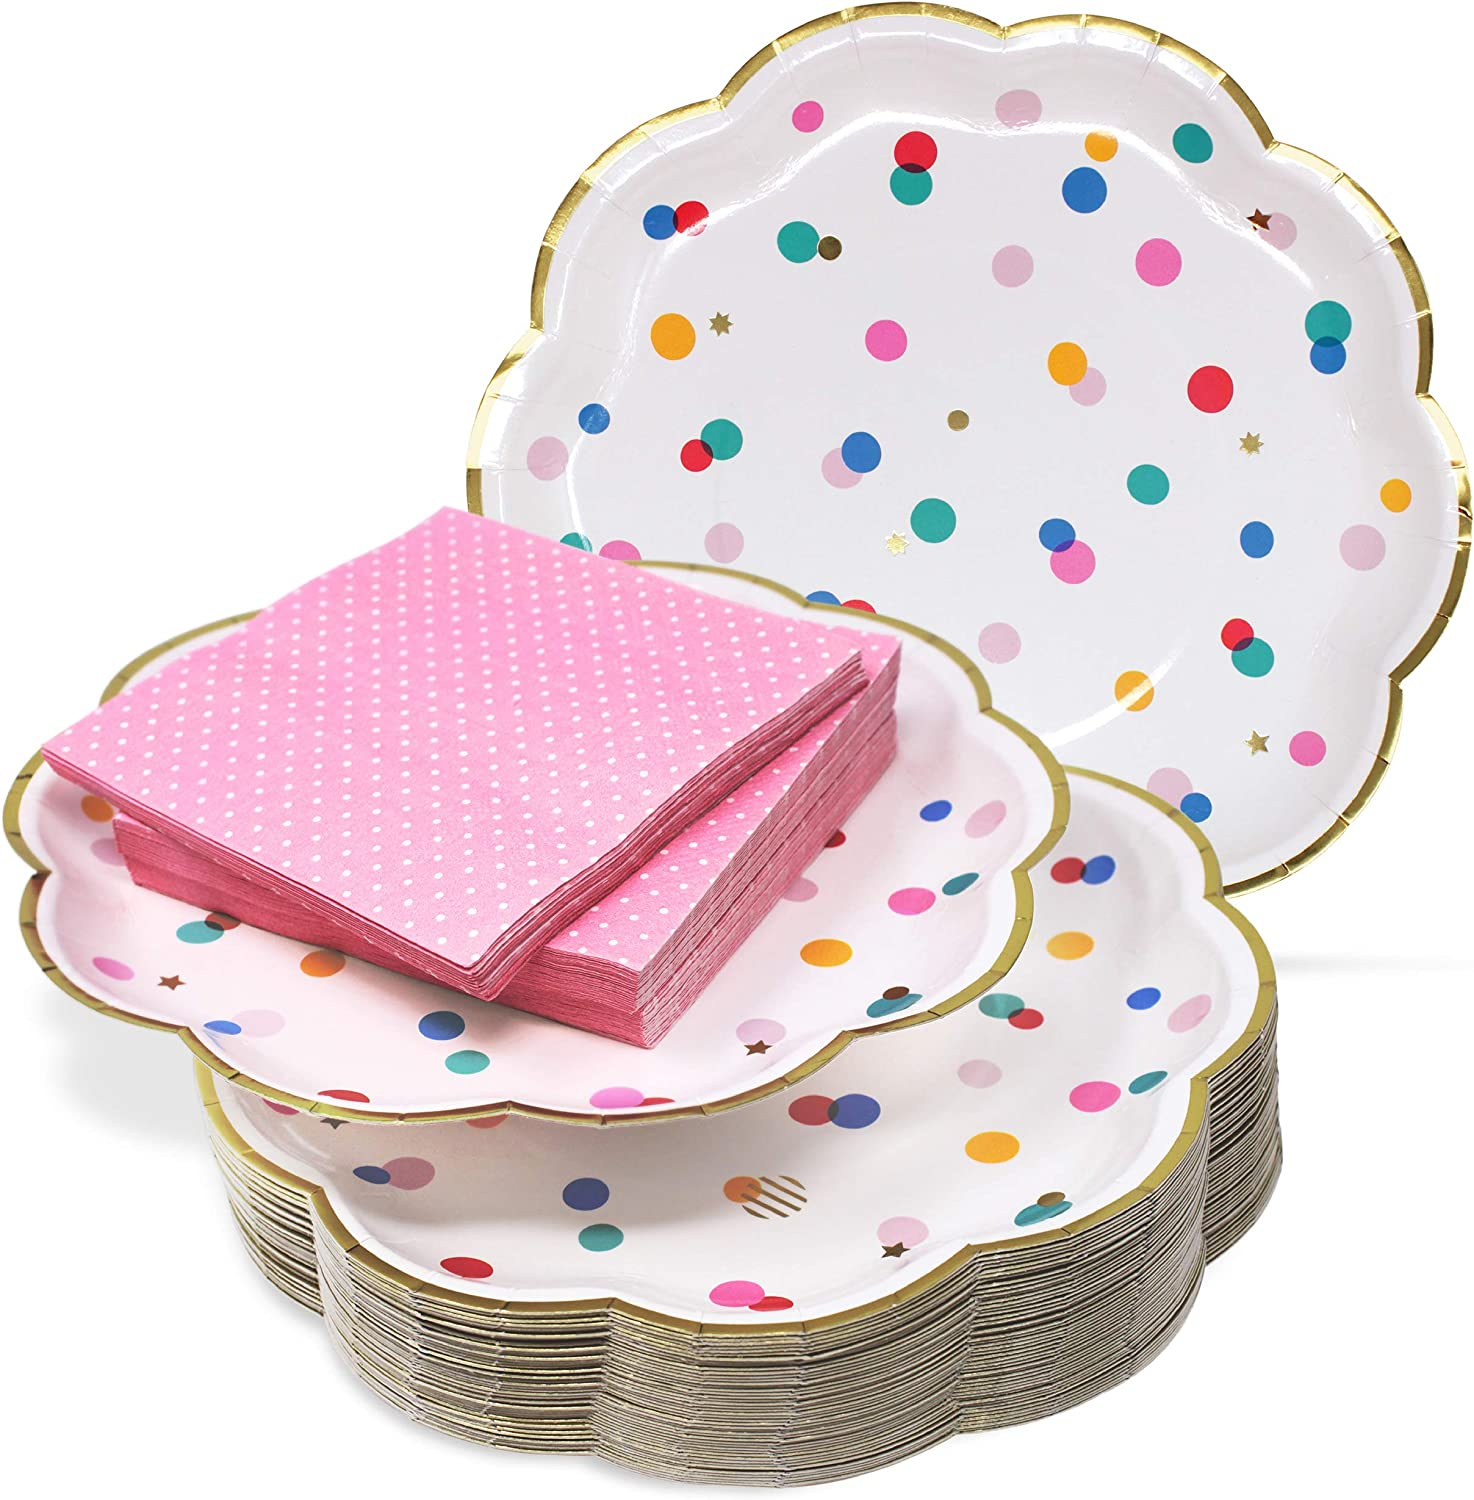 """9"""" Paper Party Plates and Cocktail Napkins Set – Ultra-Thick 400GSM Disposable Plates Won't Become Soggy – Pink and Gold Party Supplies for Birthday Baby Shower Dinnerware. 30 Value Pack"""